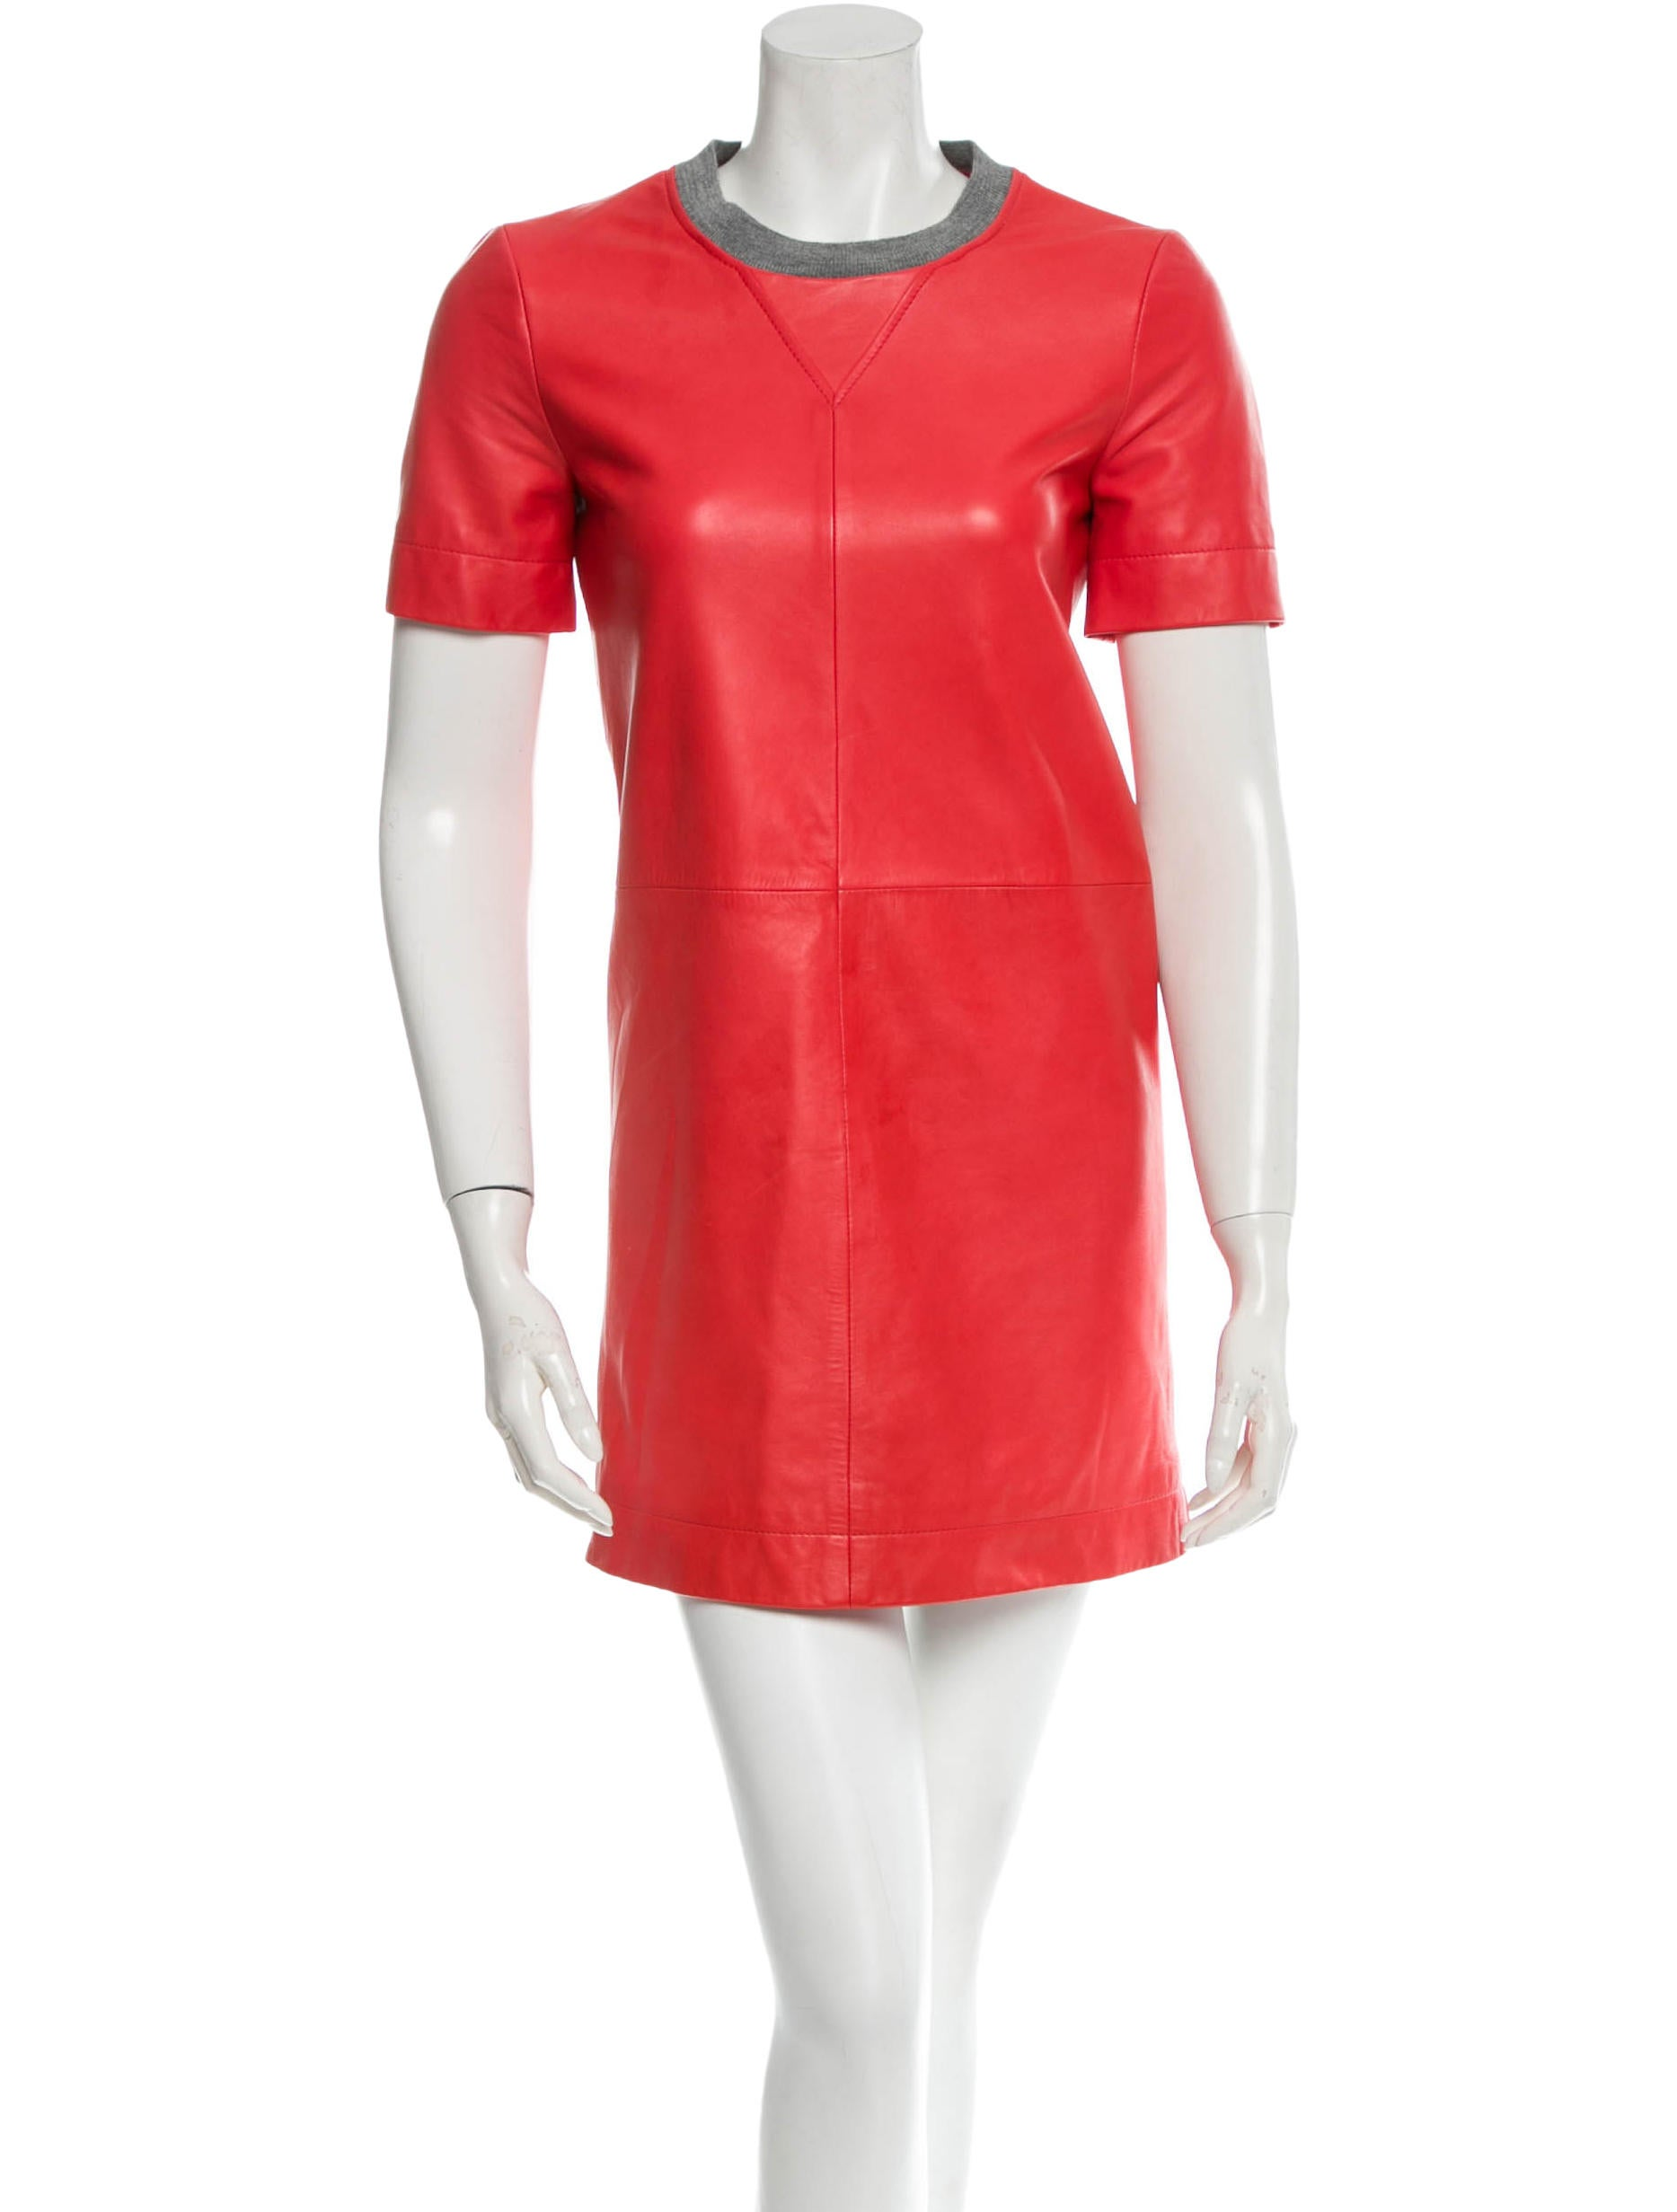 860533c7948 Cacharel Leather Dress - Clothing - CAC20617 | The RealReal